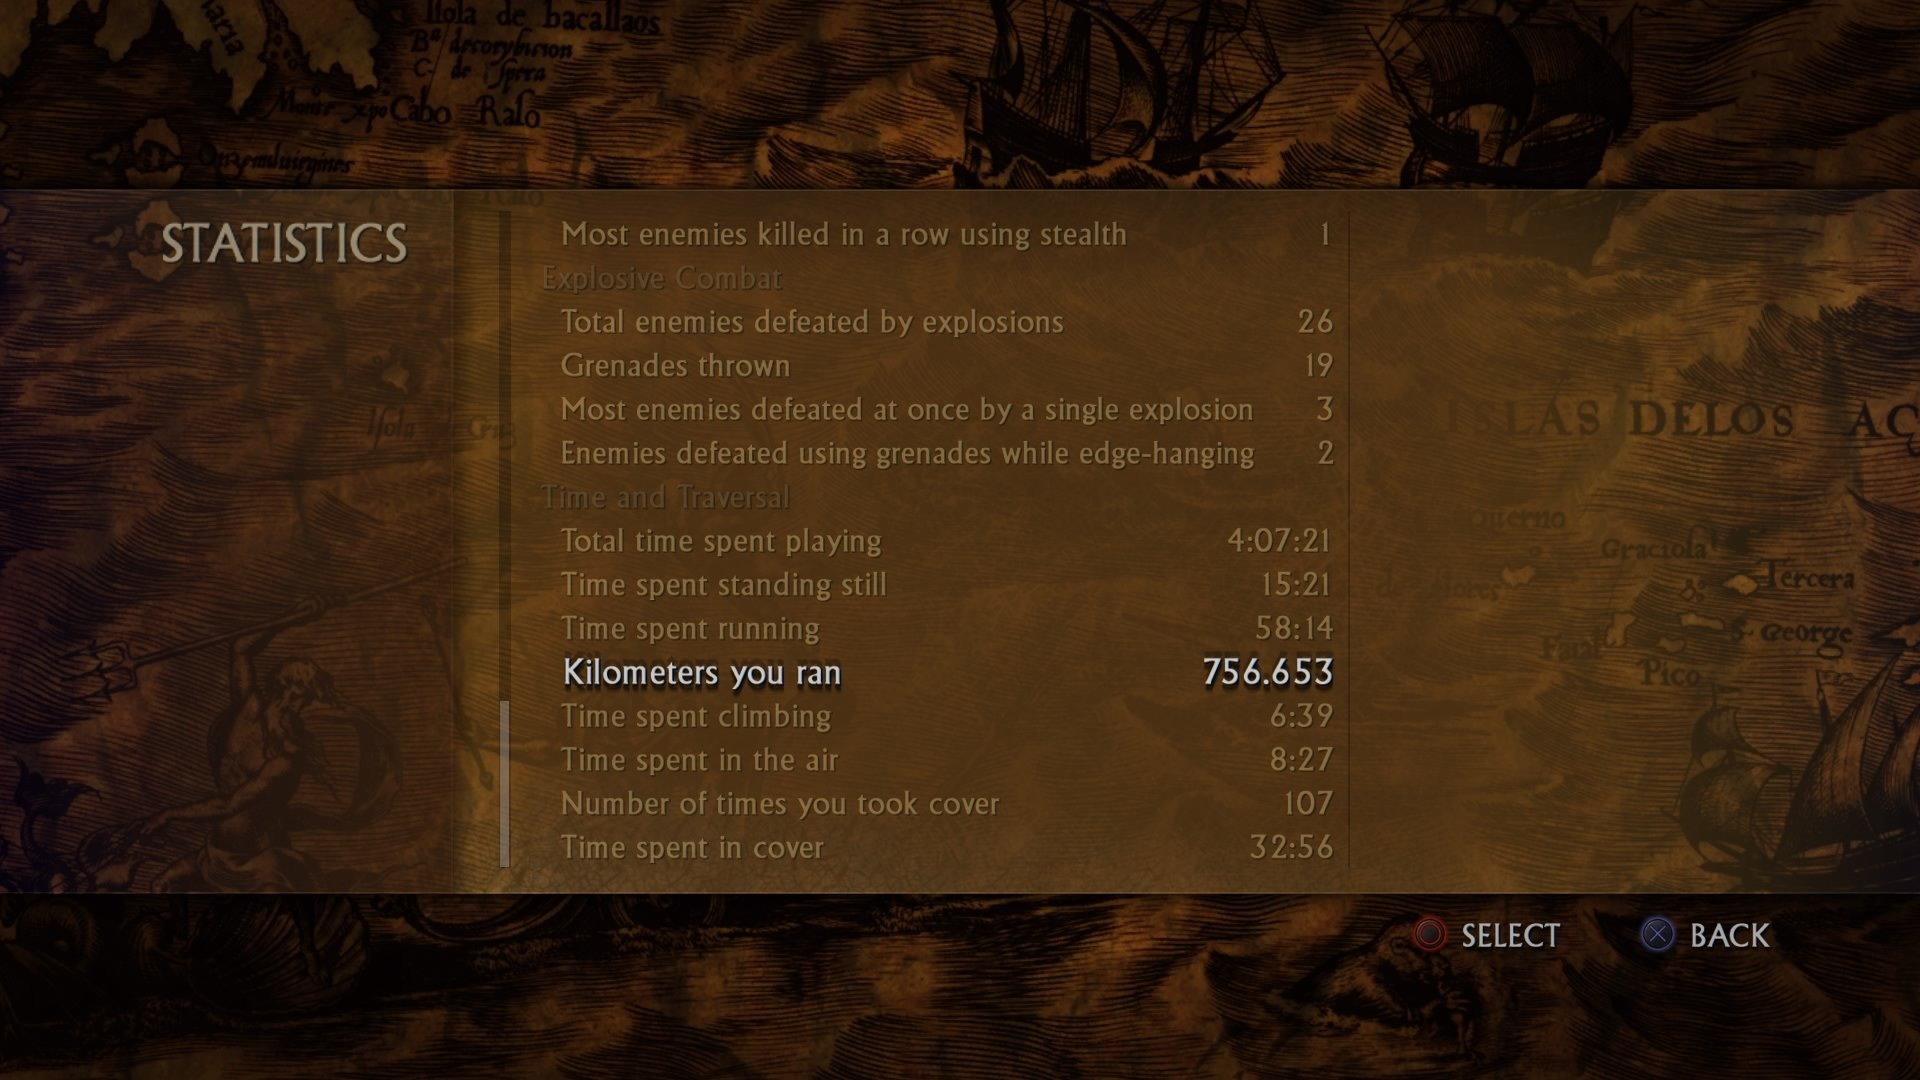 Statistics @ Uncharted: Drake's Fortune